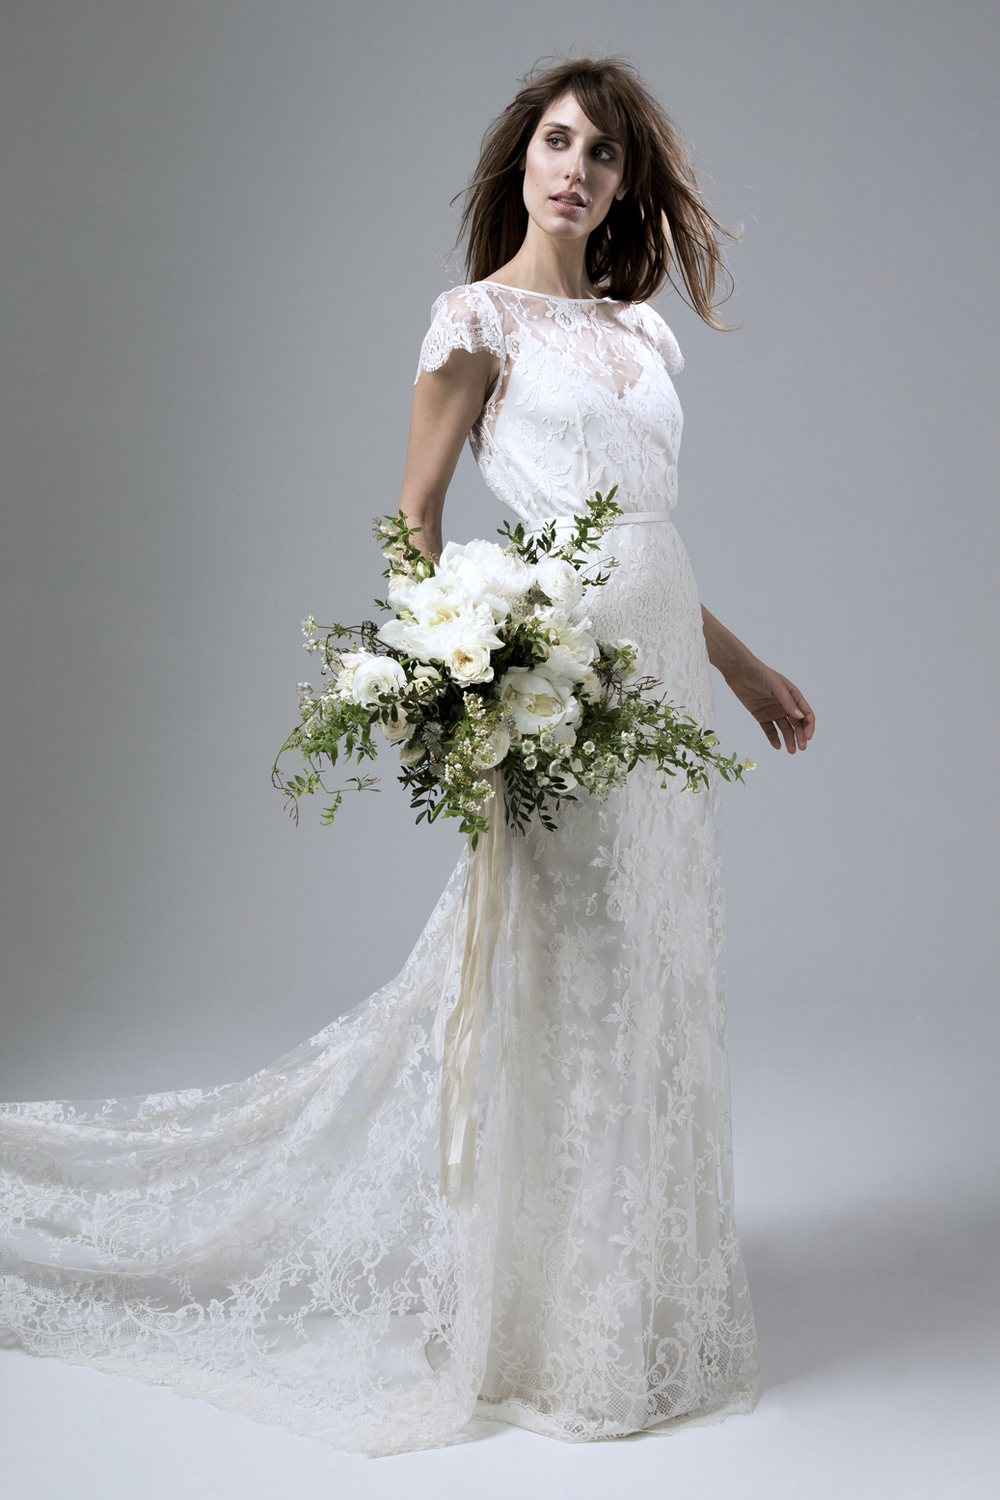 Profile view of the Iris Rose Full French Lace Wedding Dress by Halfpenny London